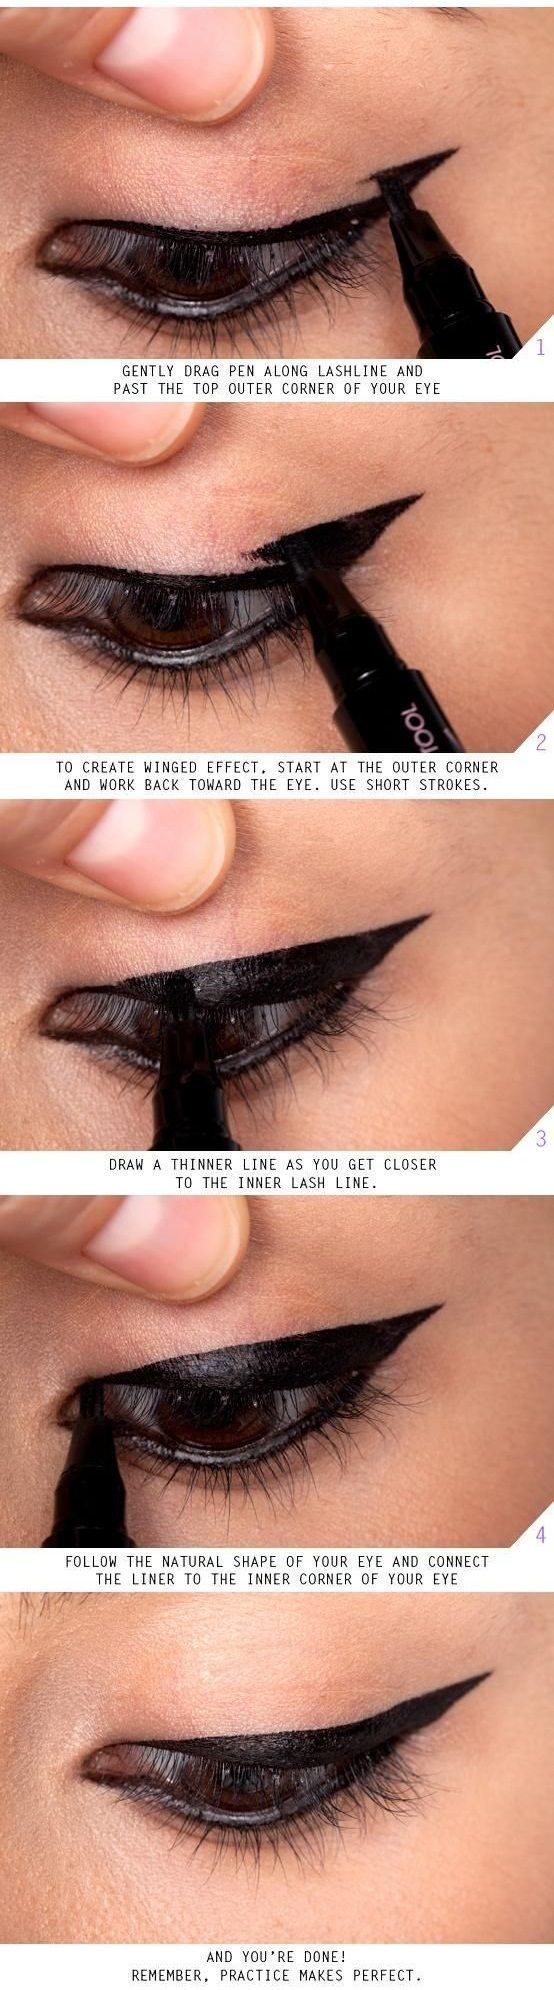 17 Great Eyeliner Hacks | DIY Tutorials For A Dramatic Makeup Look With Easy Tips & Tricks Every Girl Should Know By Makeup Tutorials  http://makeuptutorials.com/makeup-tutorials-17-great-eyeliner-hacks/ https://www.pinterest.com/pin/447826756671715973/: